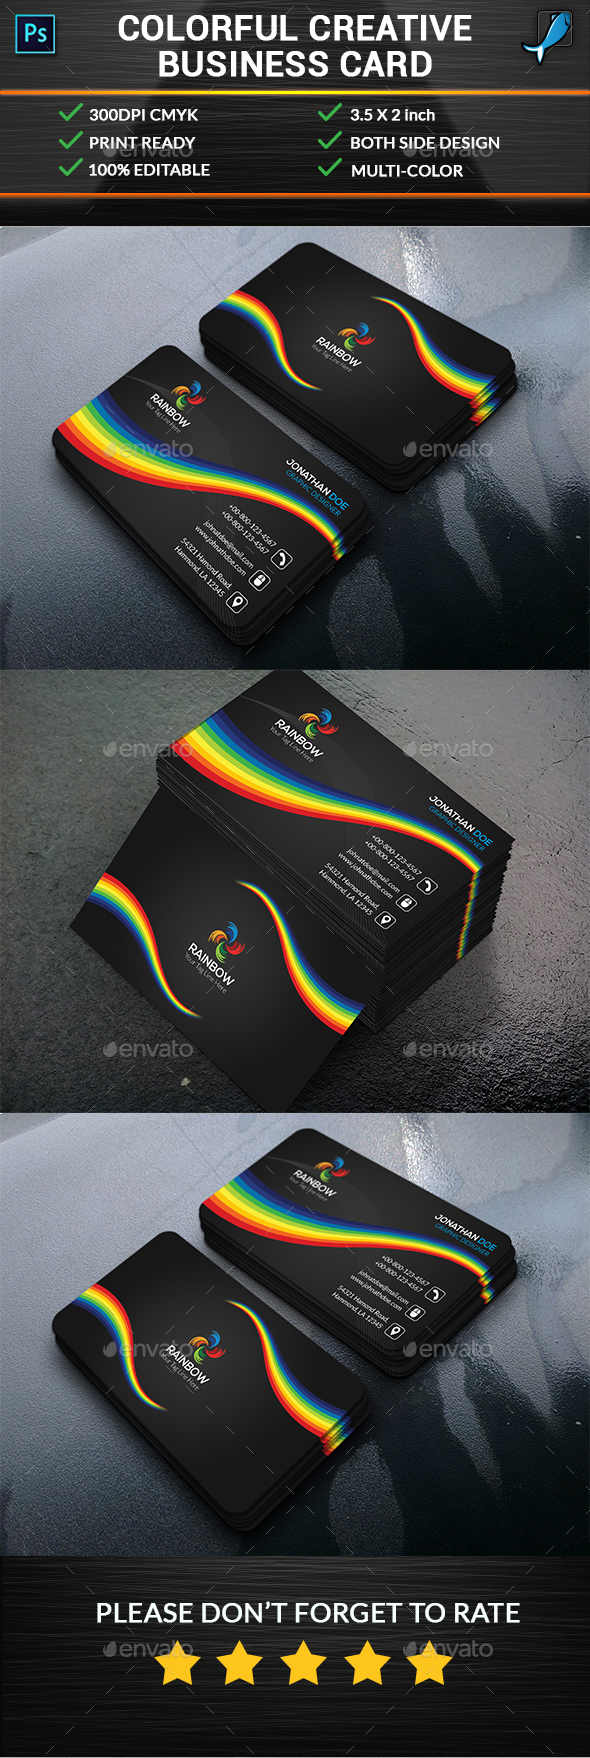 Colorful Creative Business Card - Creative Business Cards